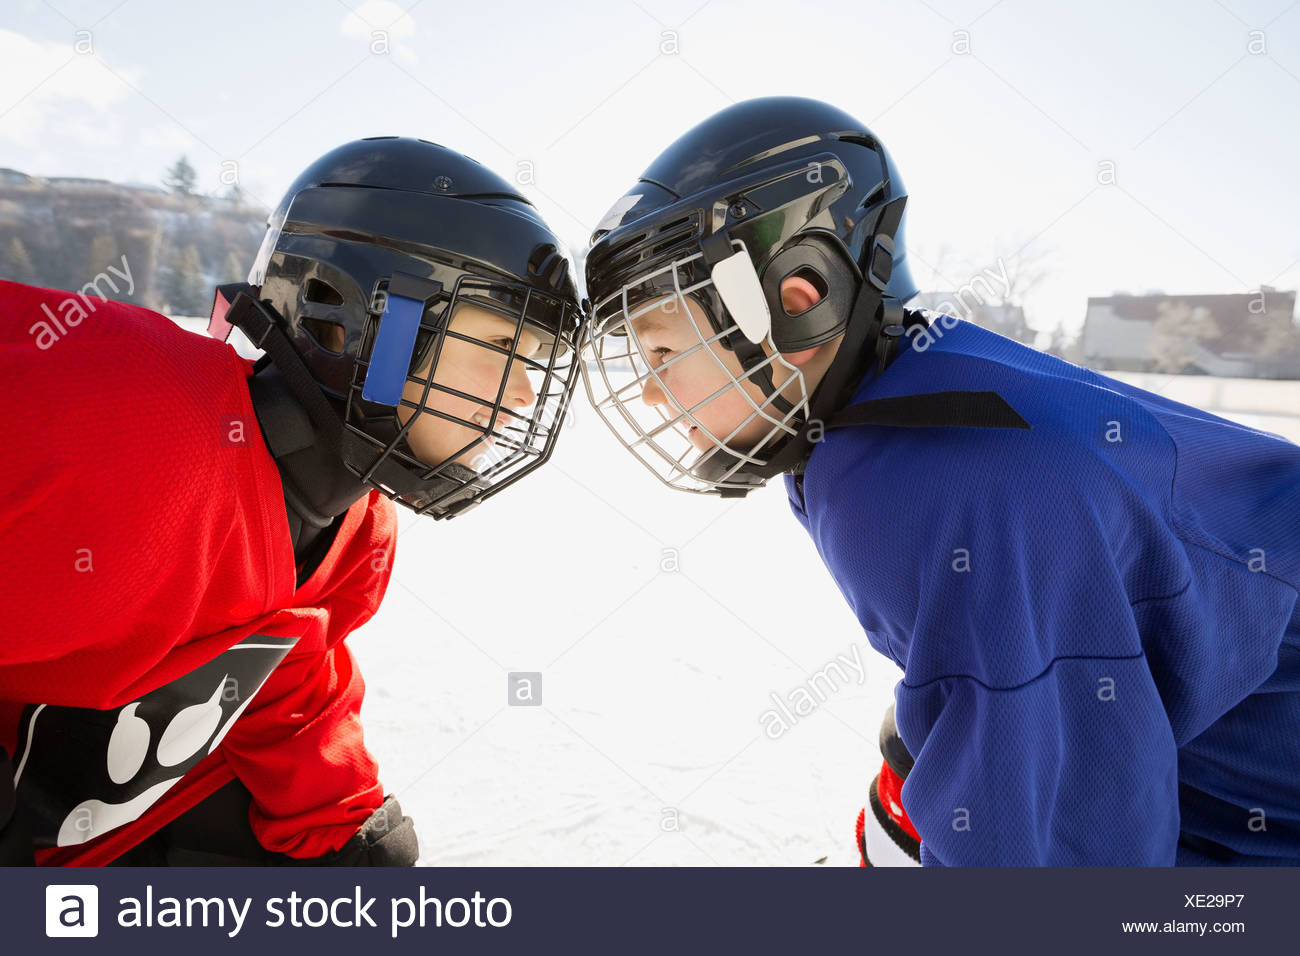 Ice hockey players facing off on rink - Stock Image